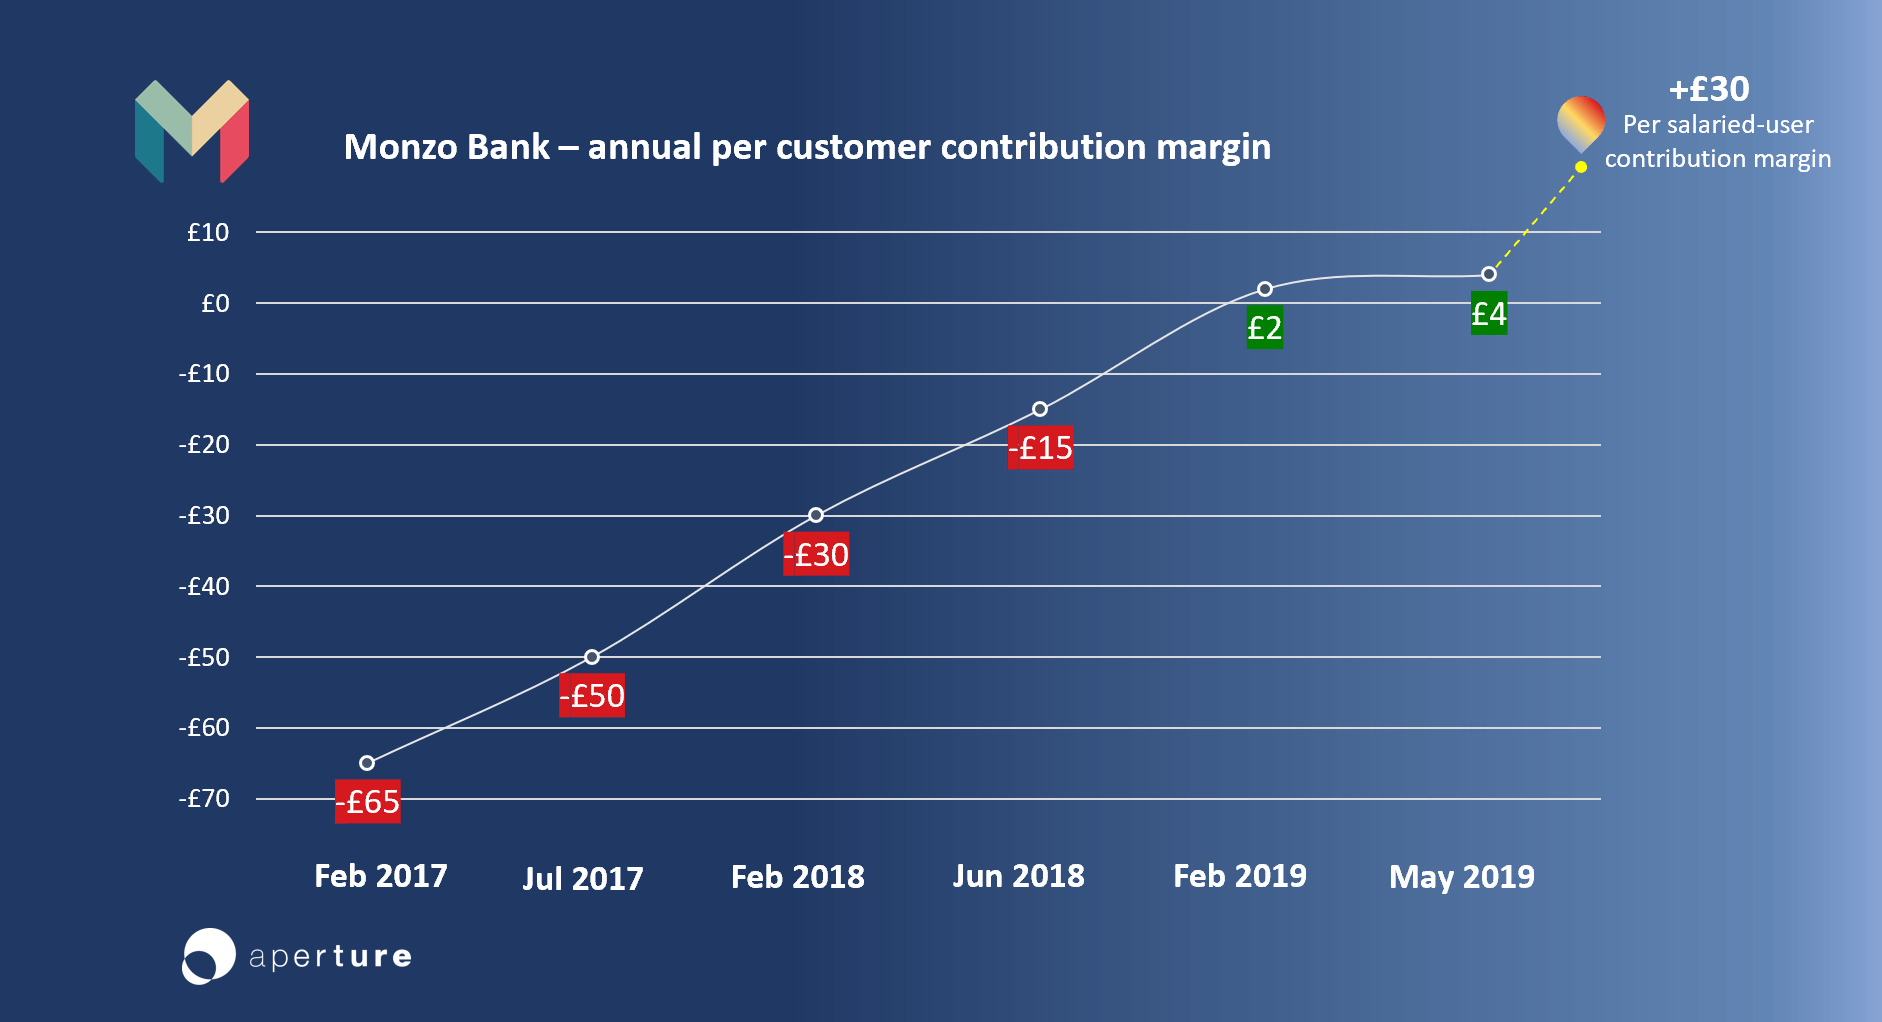 Monzo customer contribution margin